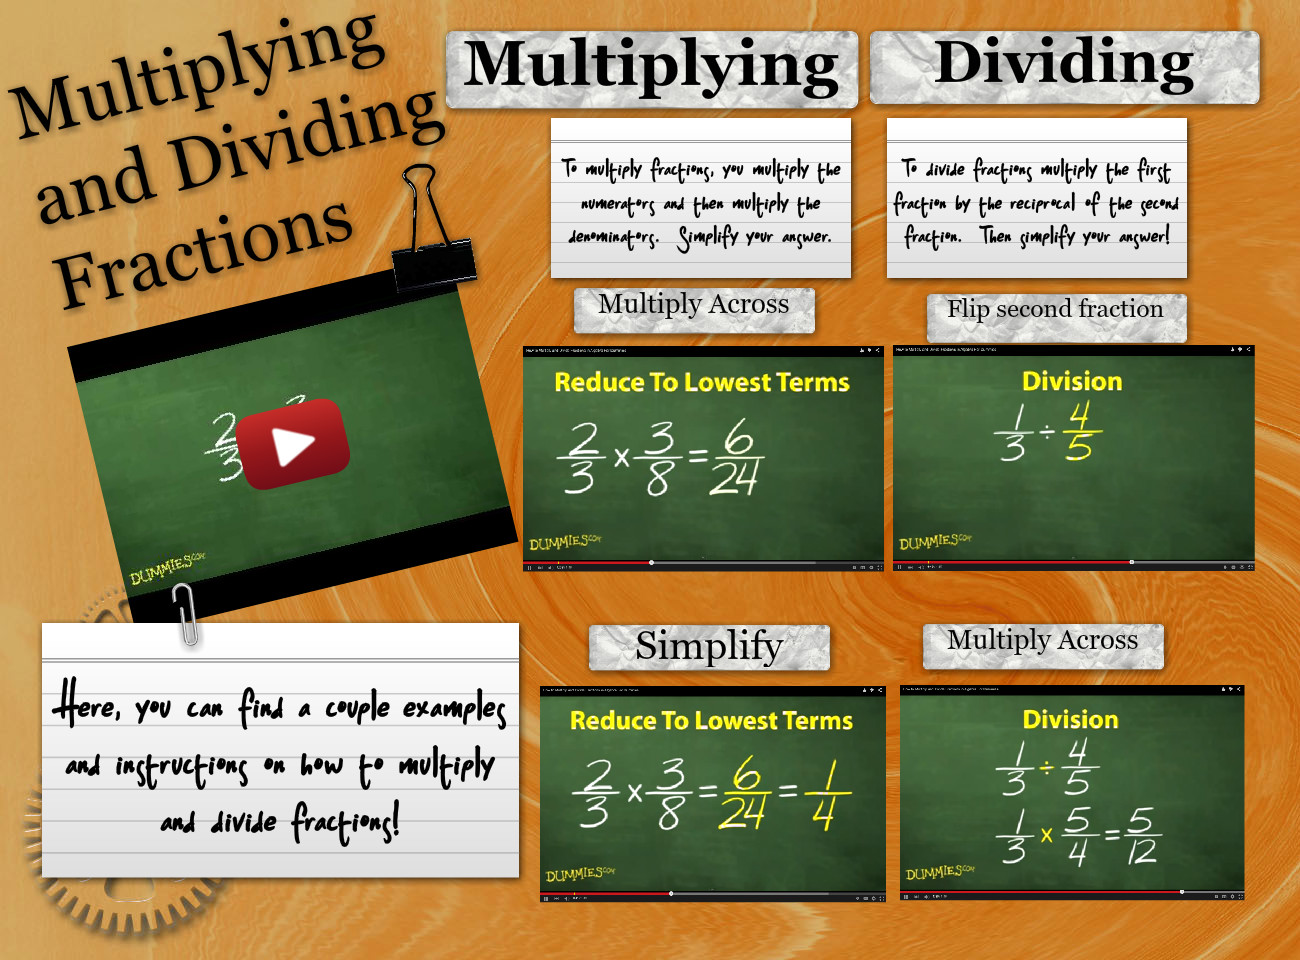 Multiplying And Dividing Fractions Denominator Dividing